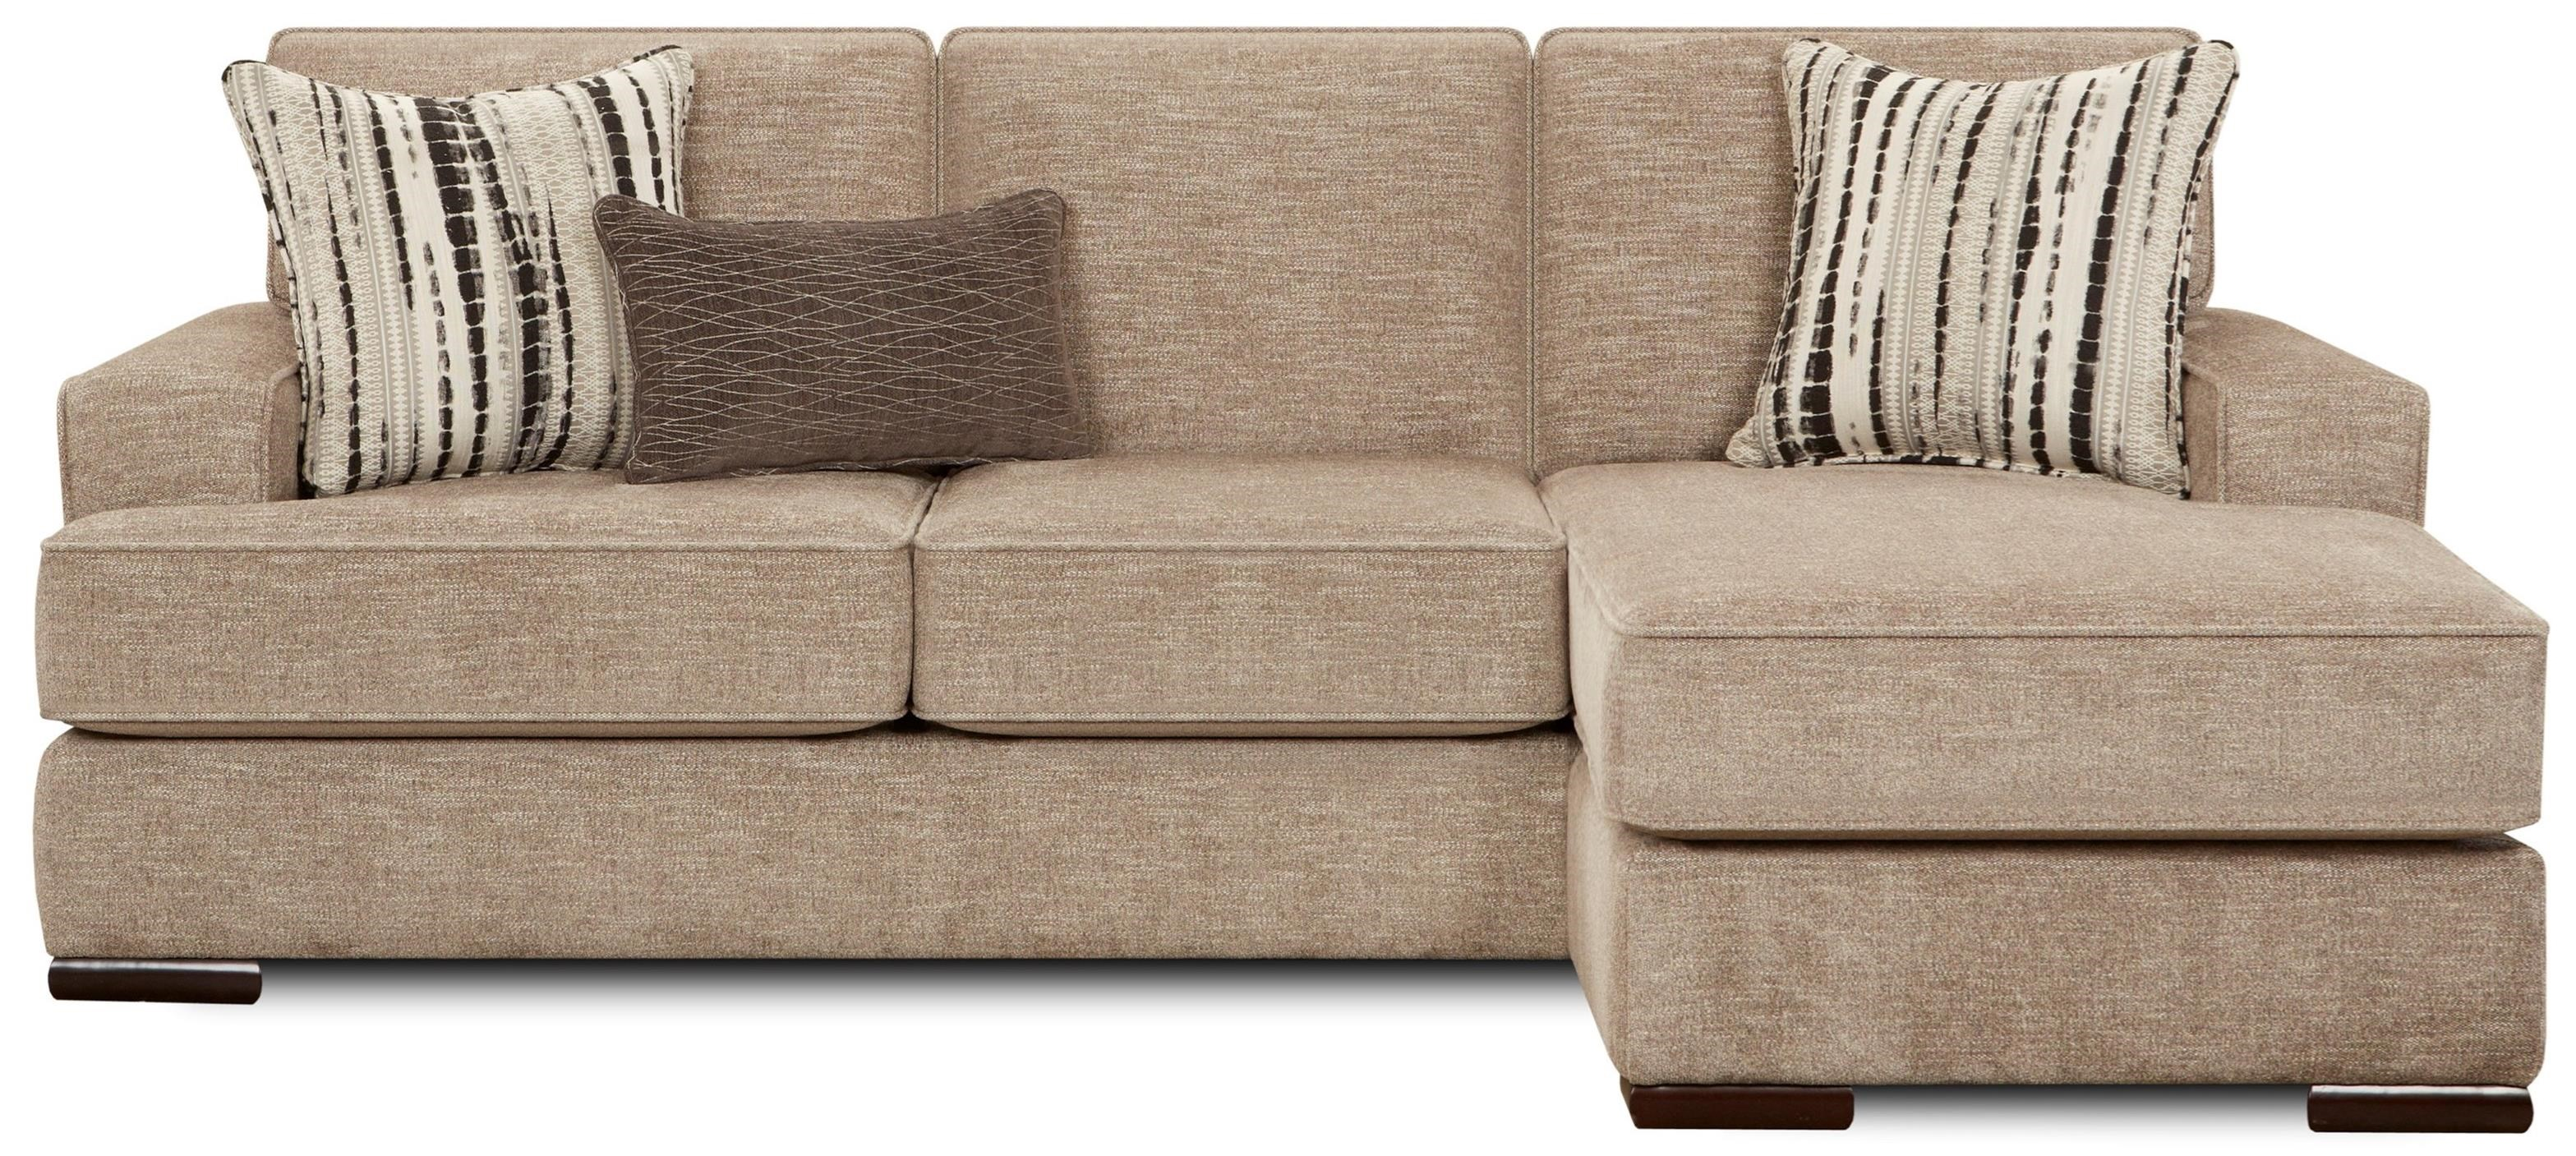 8560 Contemporary Sofa with Chaise Lounge by Fusion Furniture at Sheely\'s  Furniture & Appliance